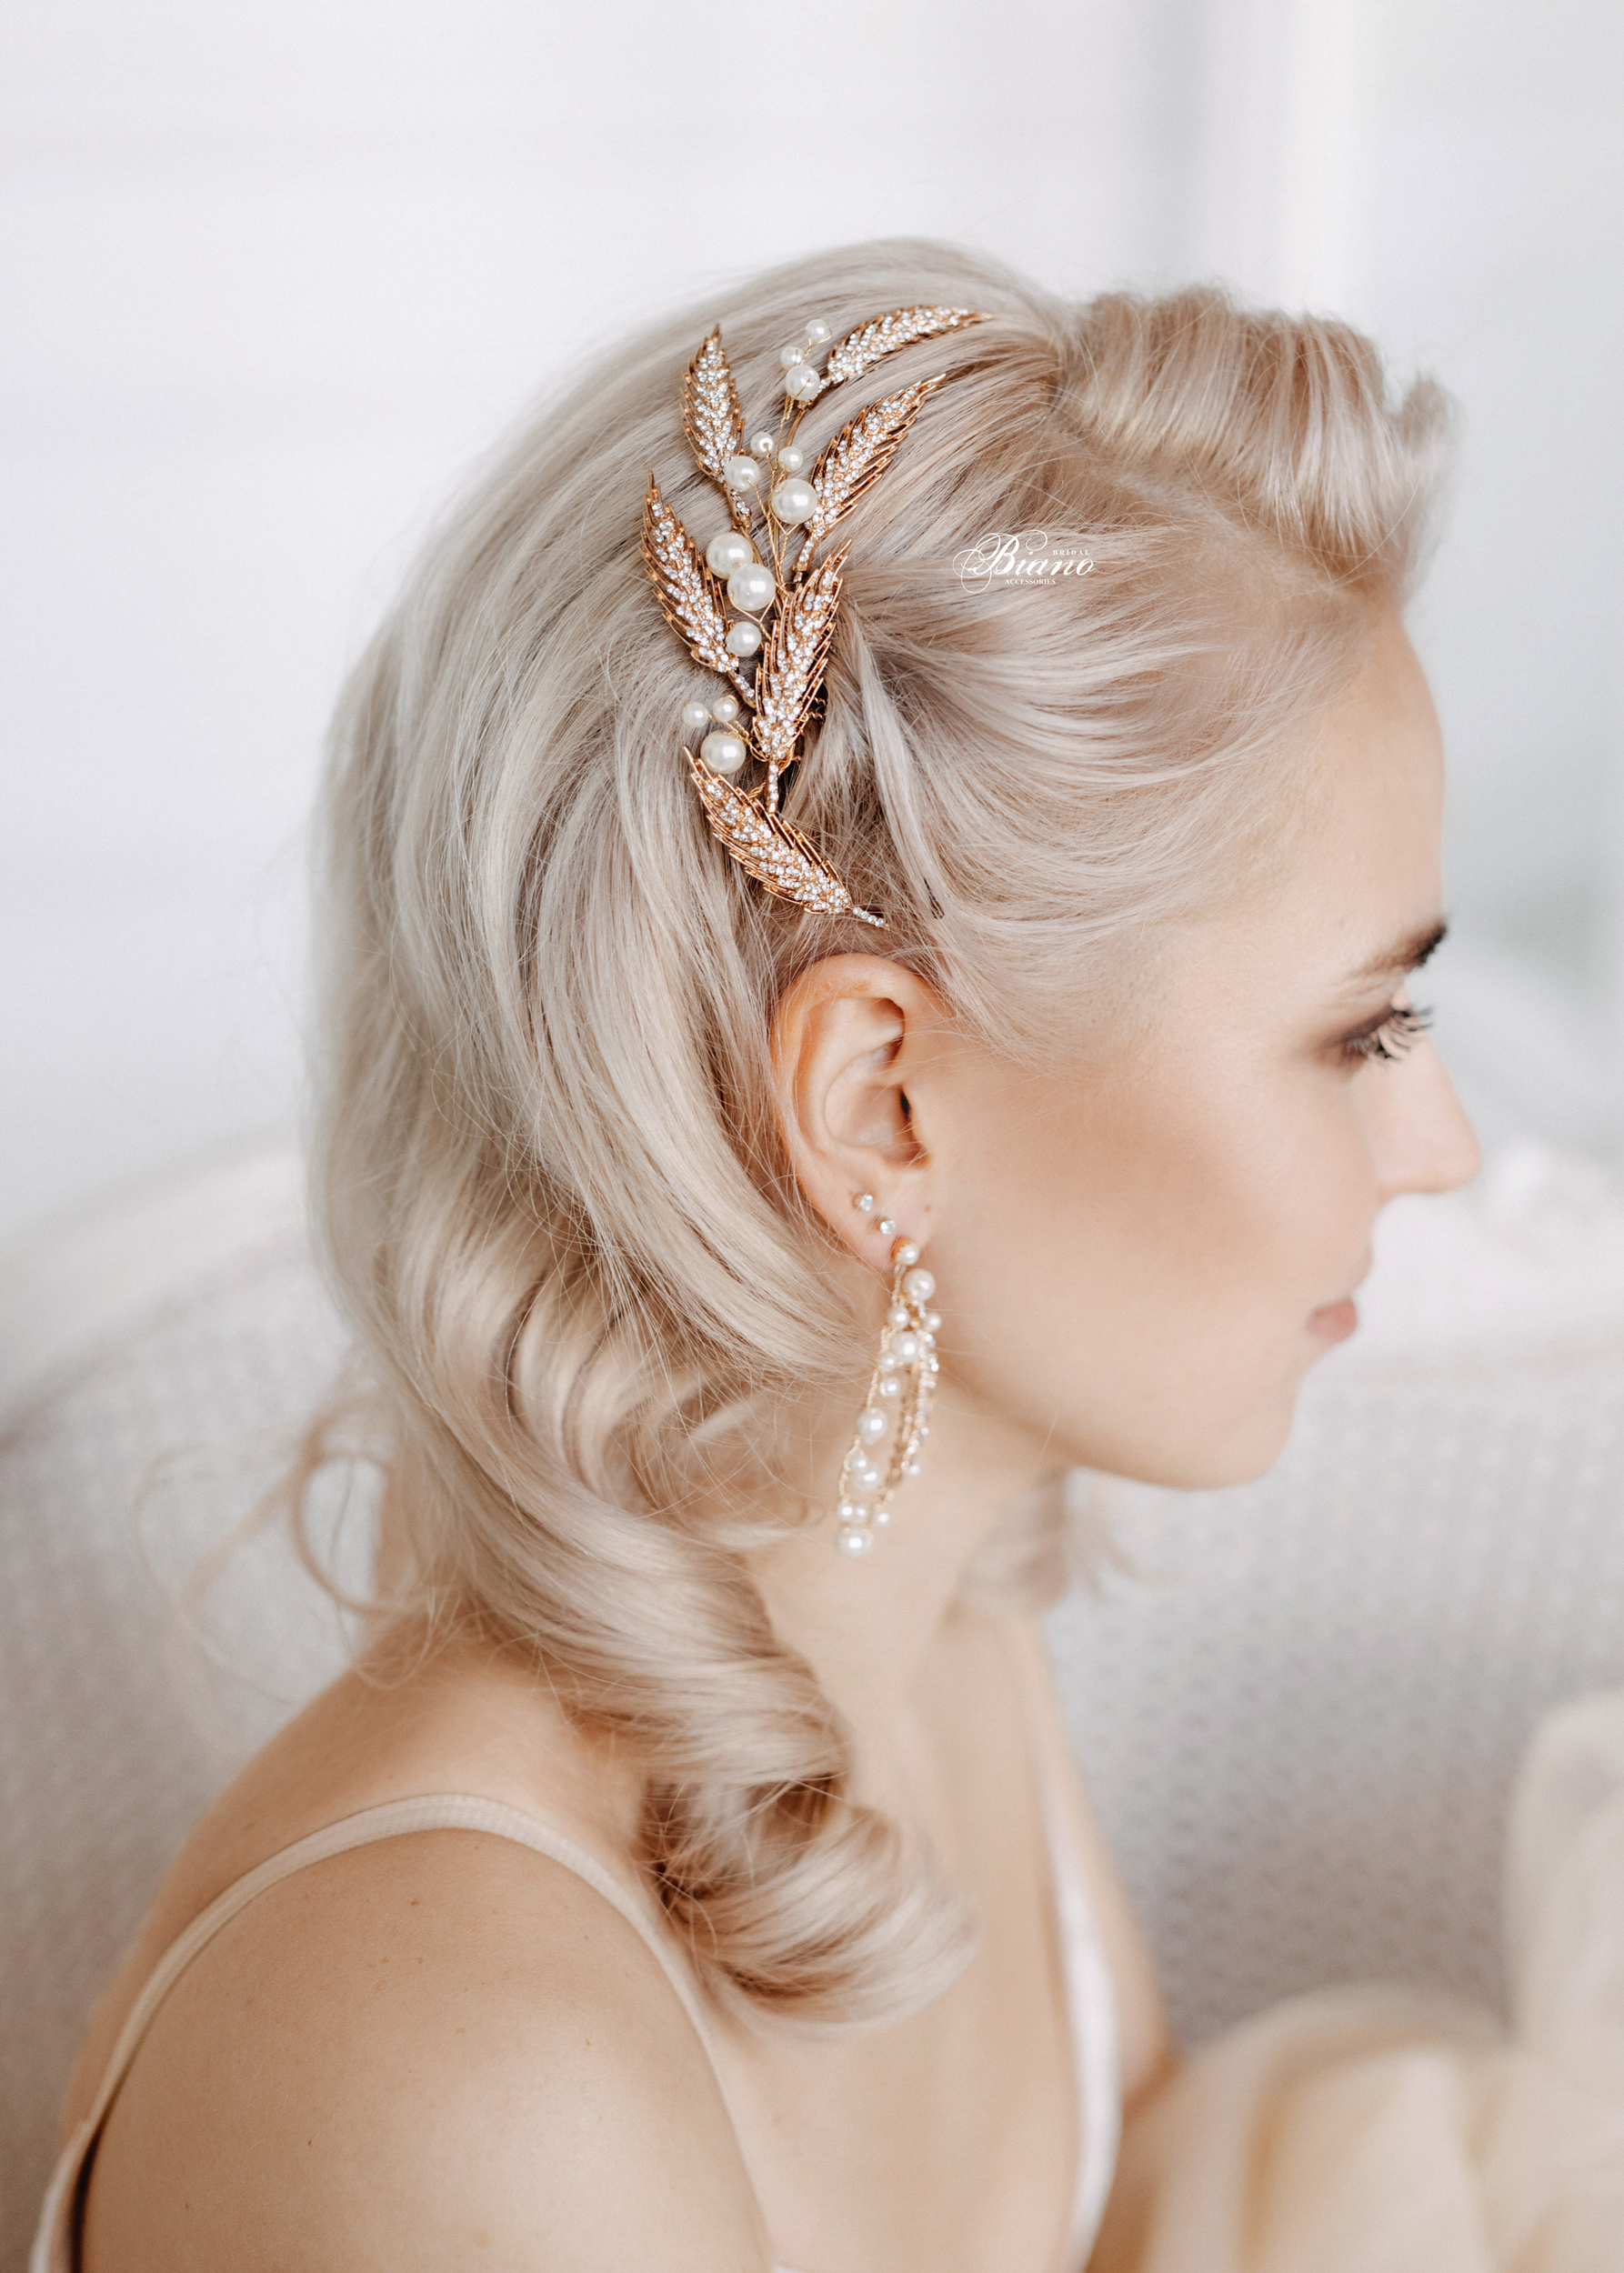 Find your perfect Gold Crystal Hair Comb - Handmade in SwitzerlandUnique DesignPossibility to Rush OrdersFree Shipping WorldwideCustomisable OrdersFast response on your questions